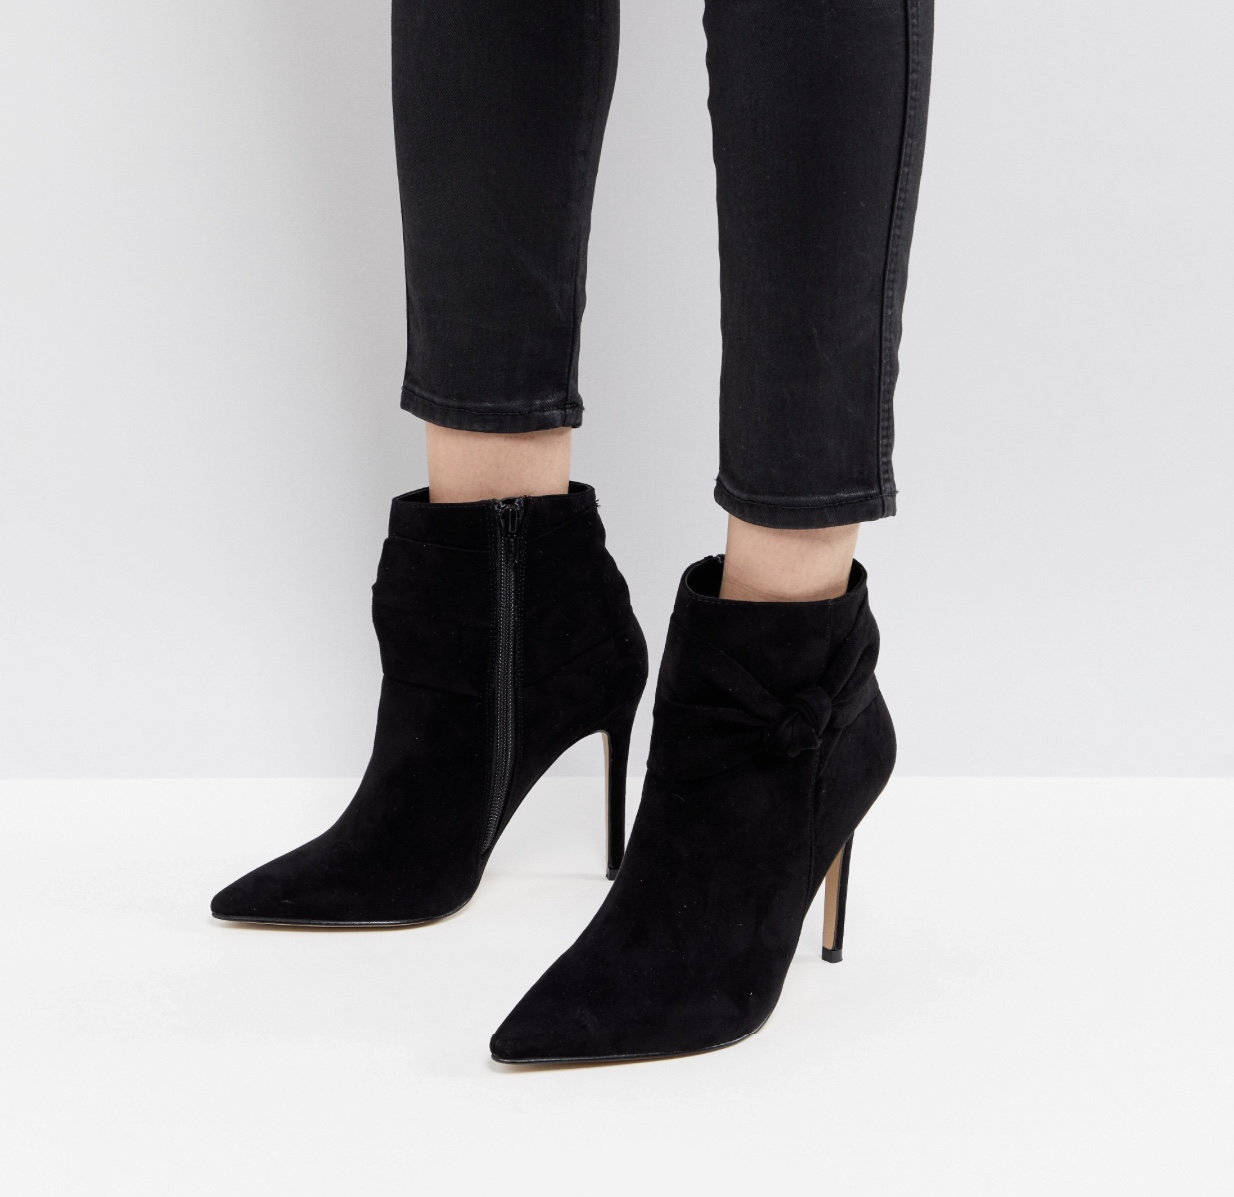 ASOS Lipsy Bow Detail Pointed Ankle Boot  $137.00